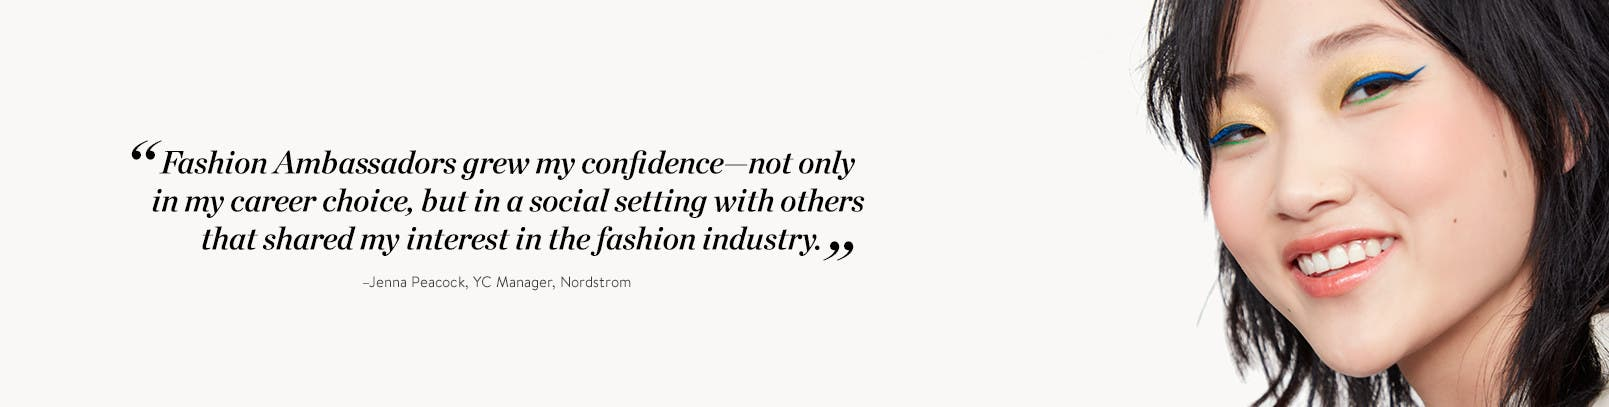 Quote from former Fashion Ambassador